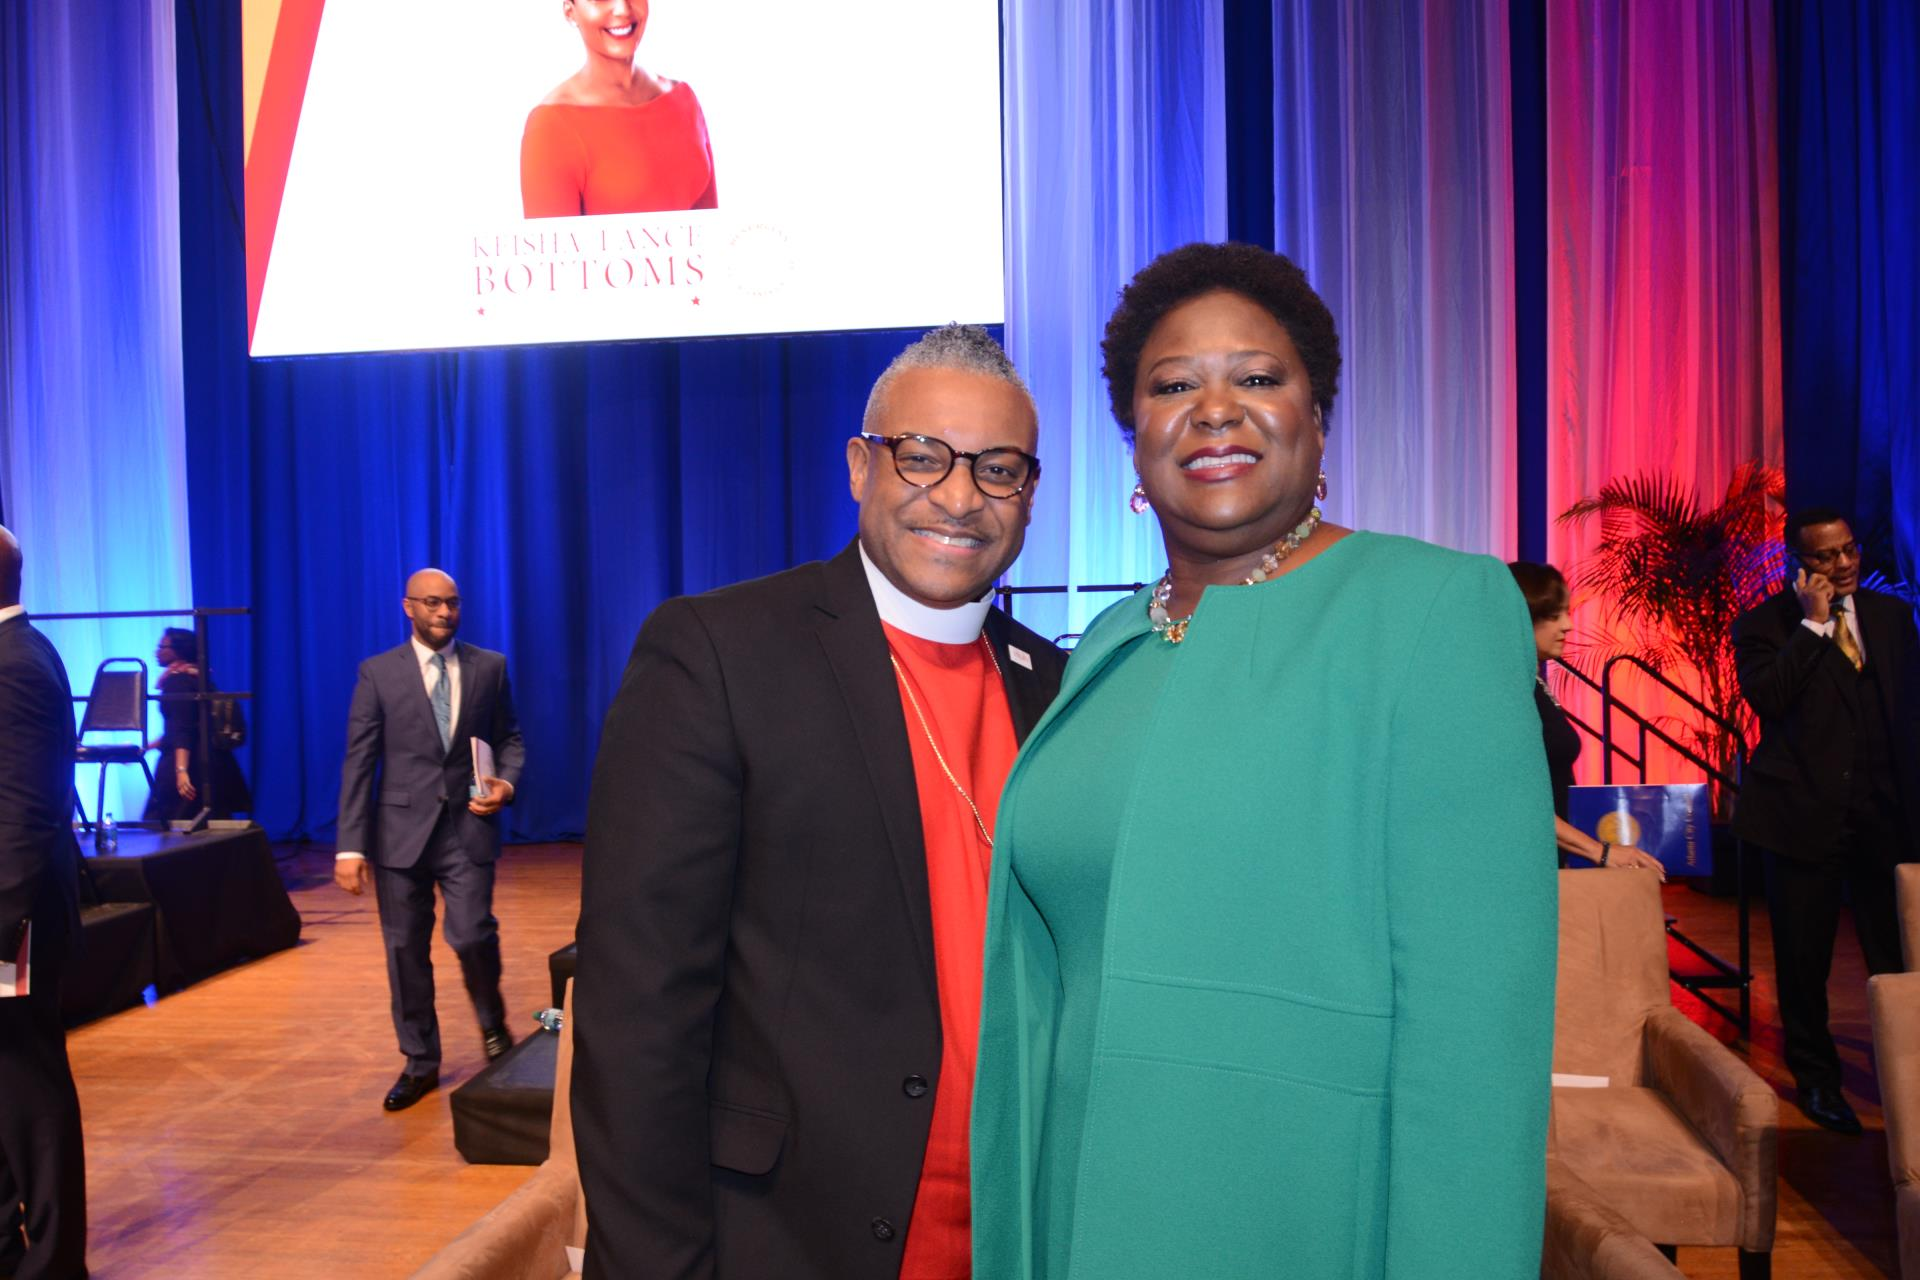 Council President Moore and Bishop Oliver Allen